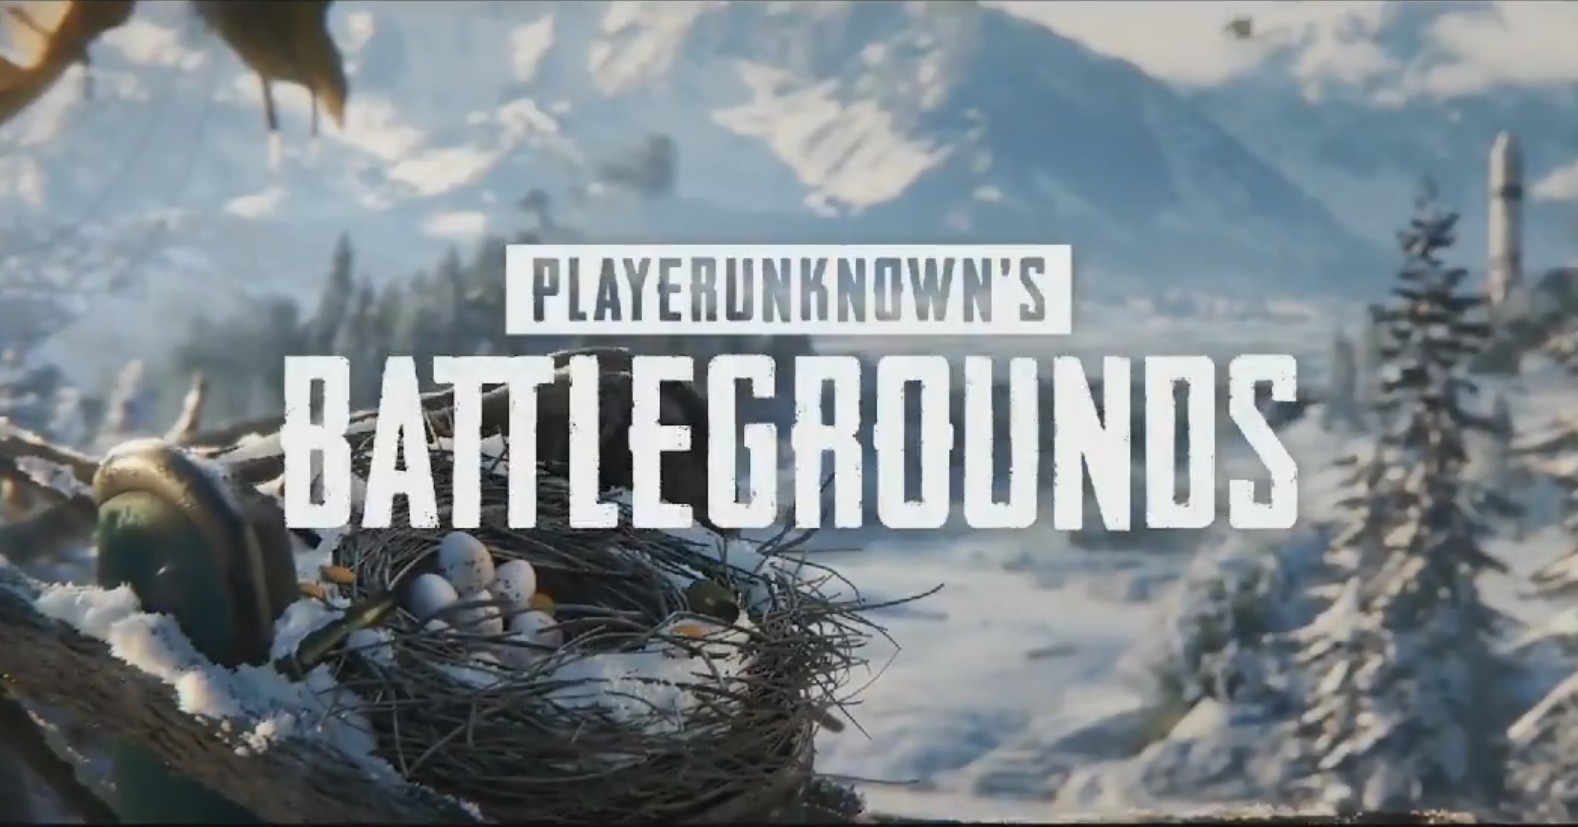 PUBGs Newest Map Vikendi Is Playable Tonight On PC Test Server Dot Esports